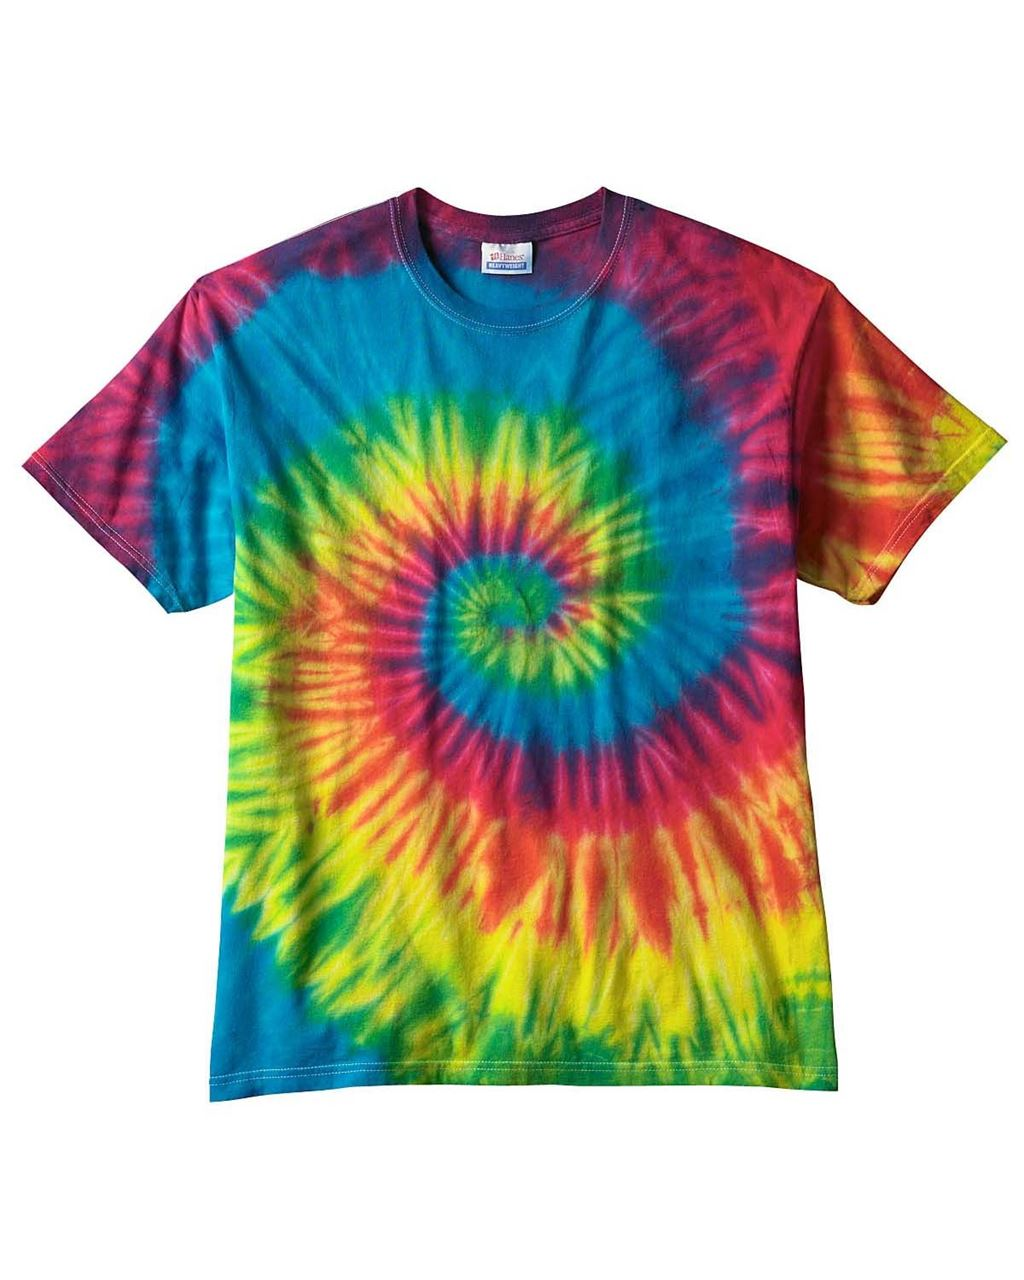 Tie dyed t shirt custom t shirts printing and for Tie dye t shirt printing